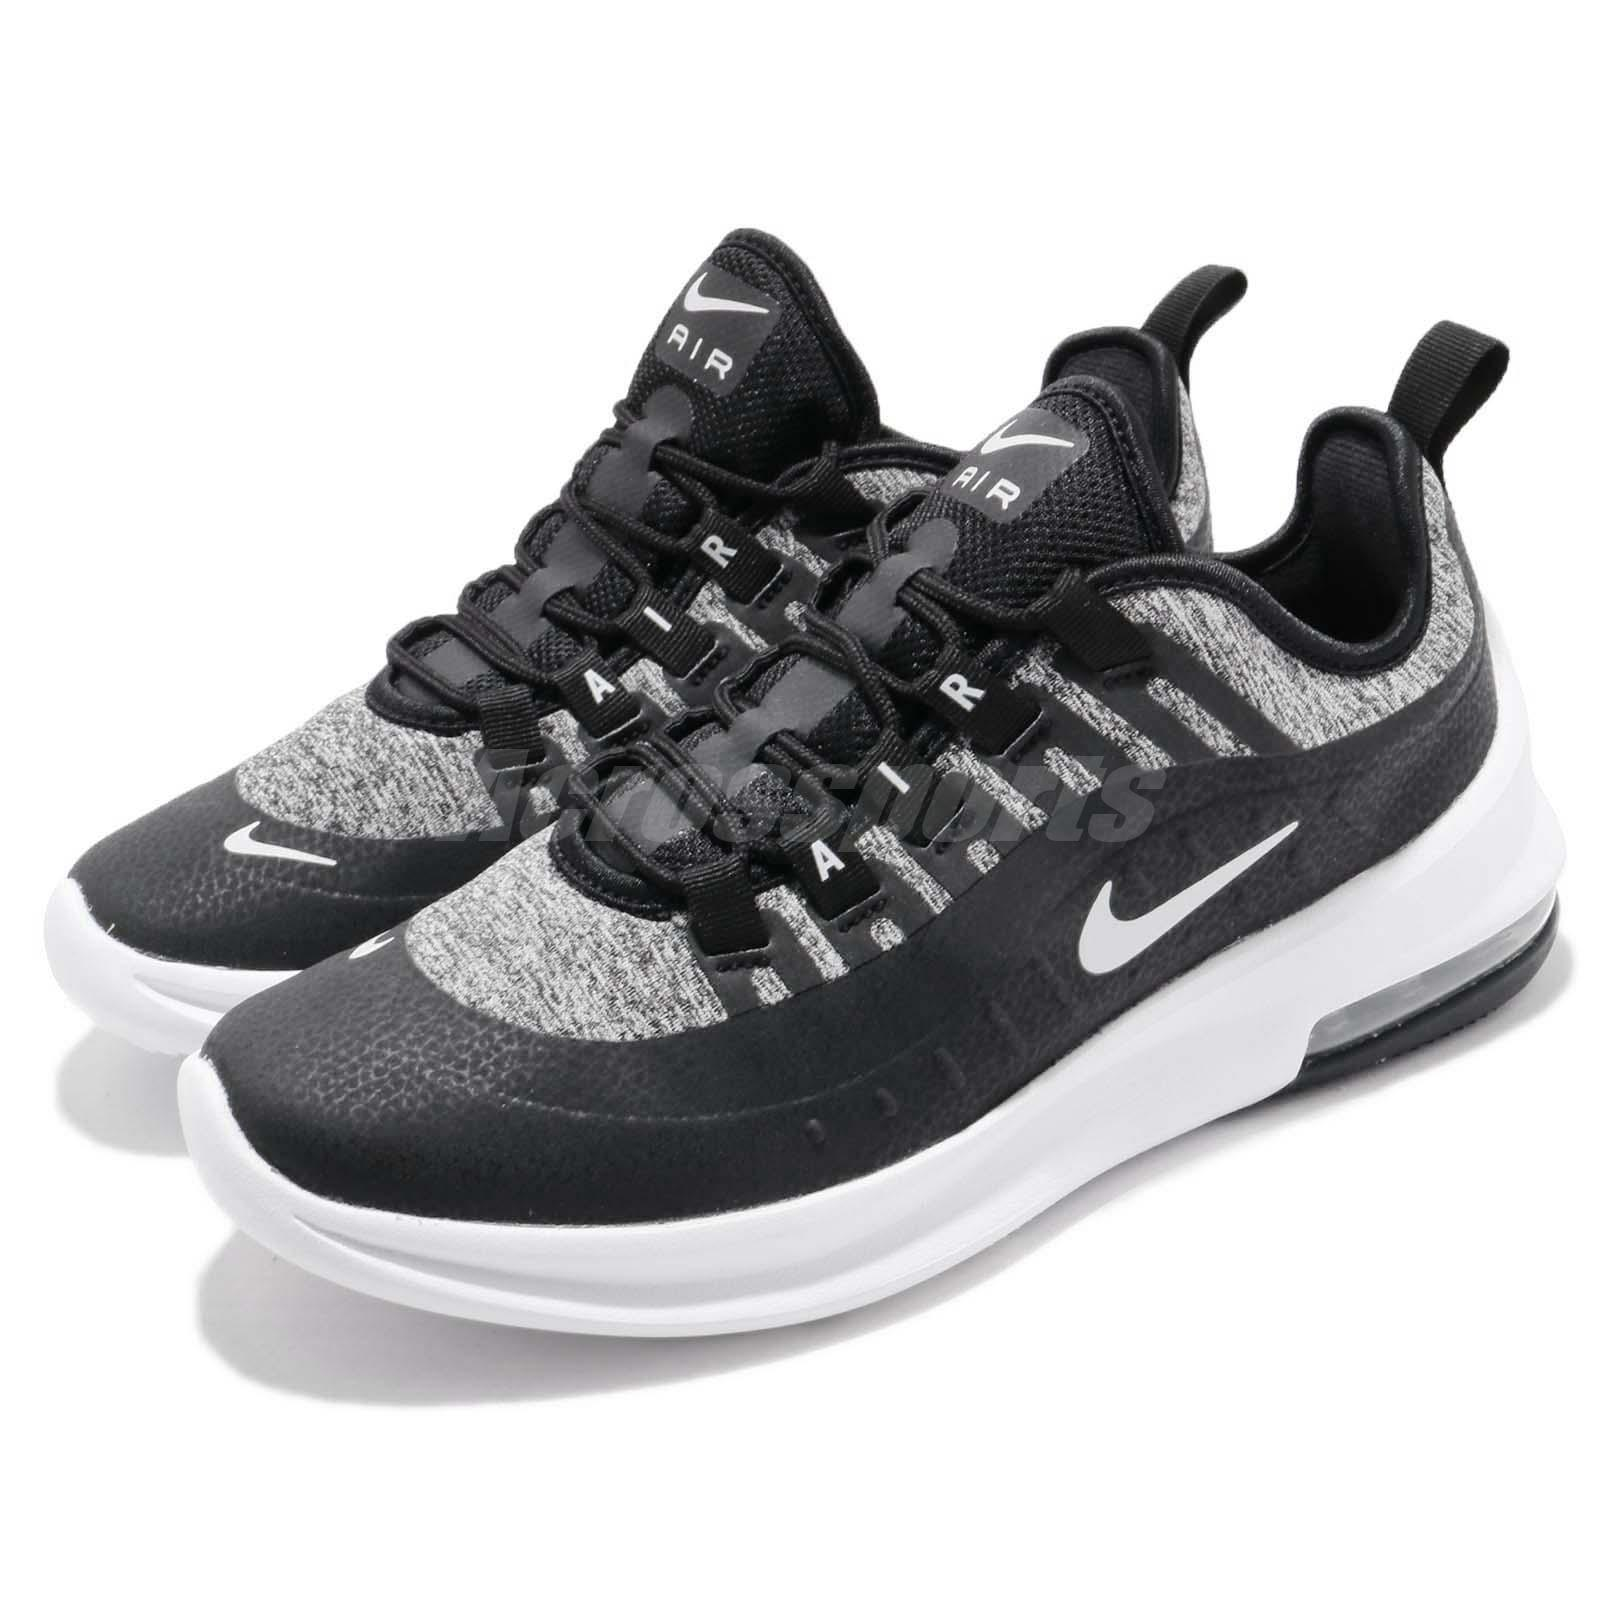 6989089ac299 Details about Nike Air Max Axis SE GS Black White Kid Youth Women Running  Shoes AR1664-001